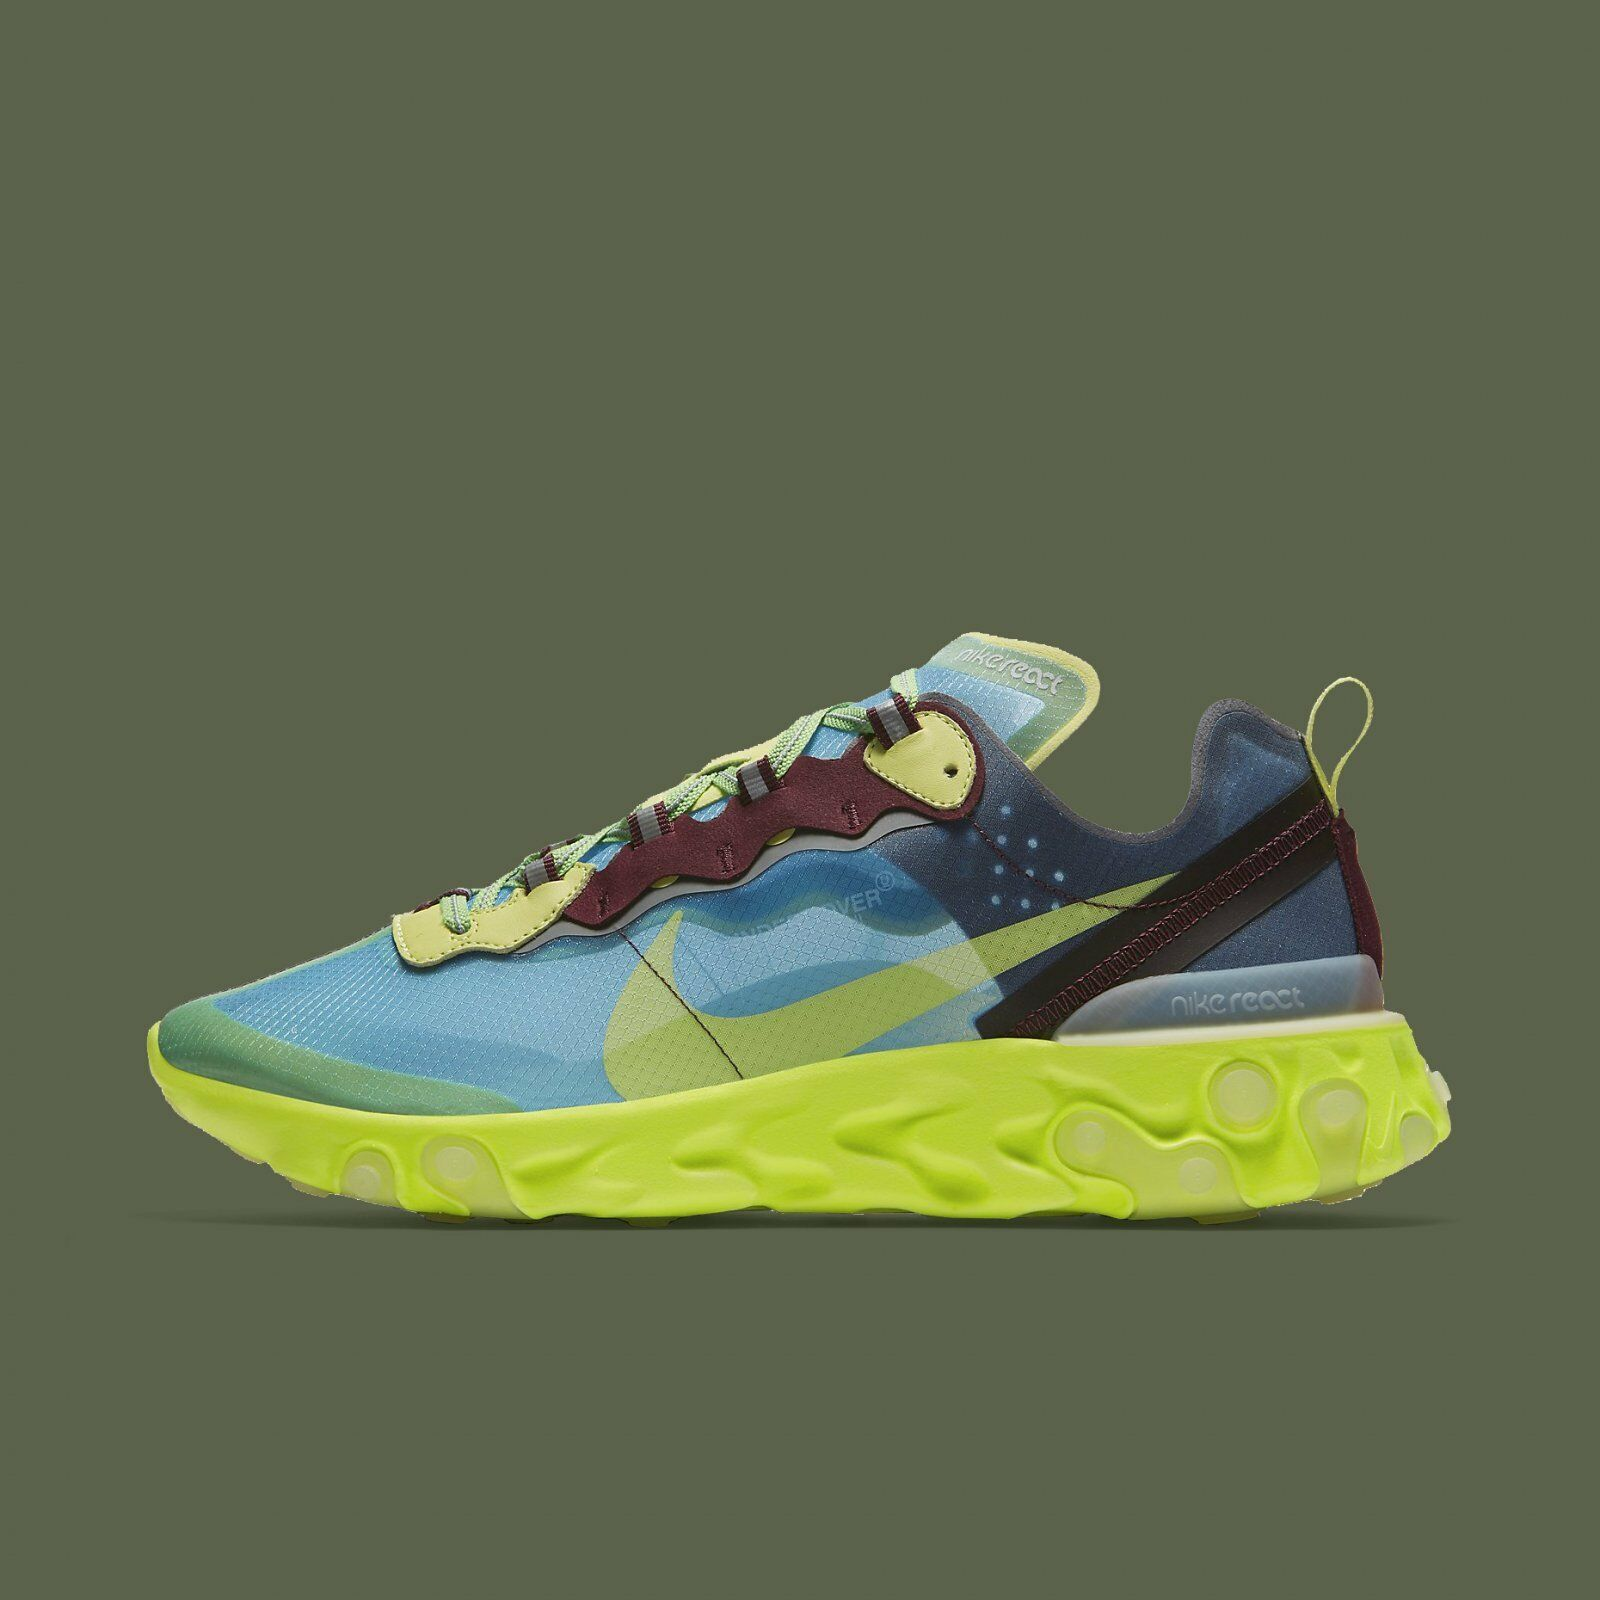 Nike React Element 87 Undercover Lakeside Electric Jaune Hommes Running BQ2718-400